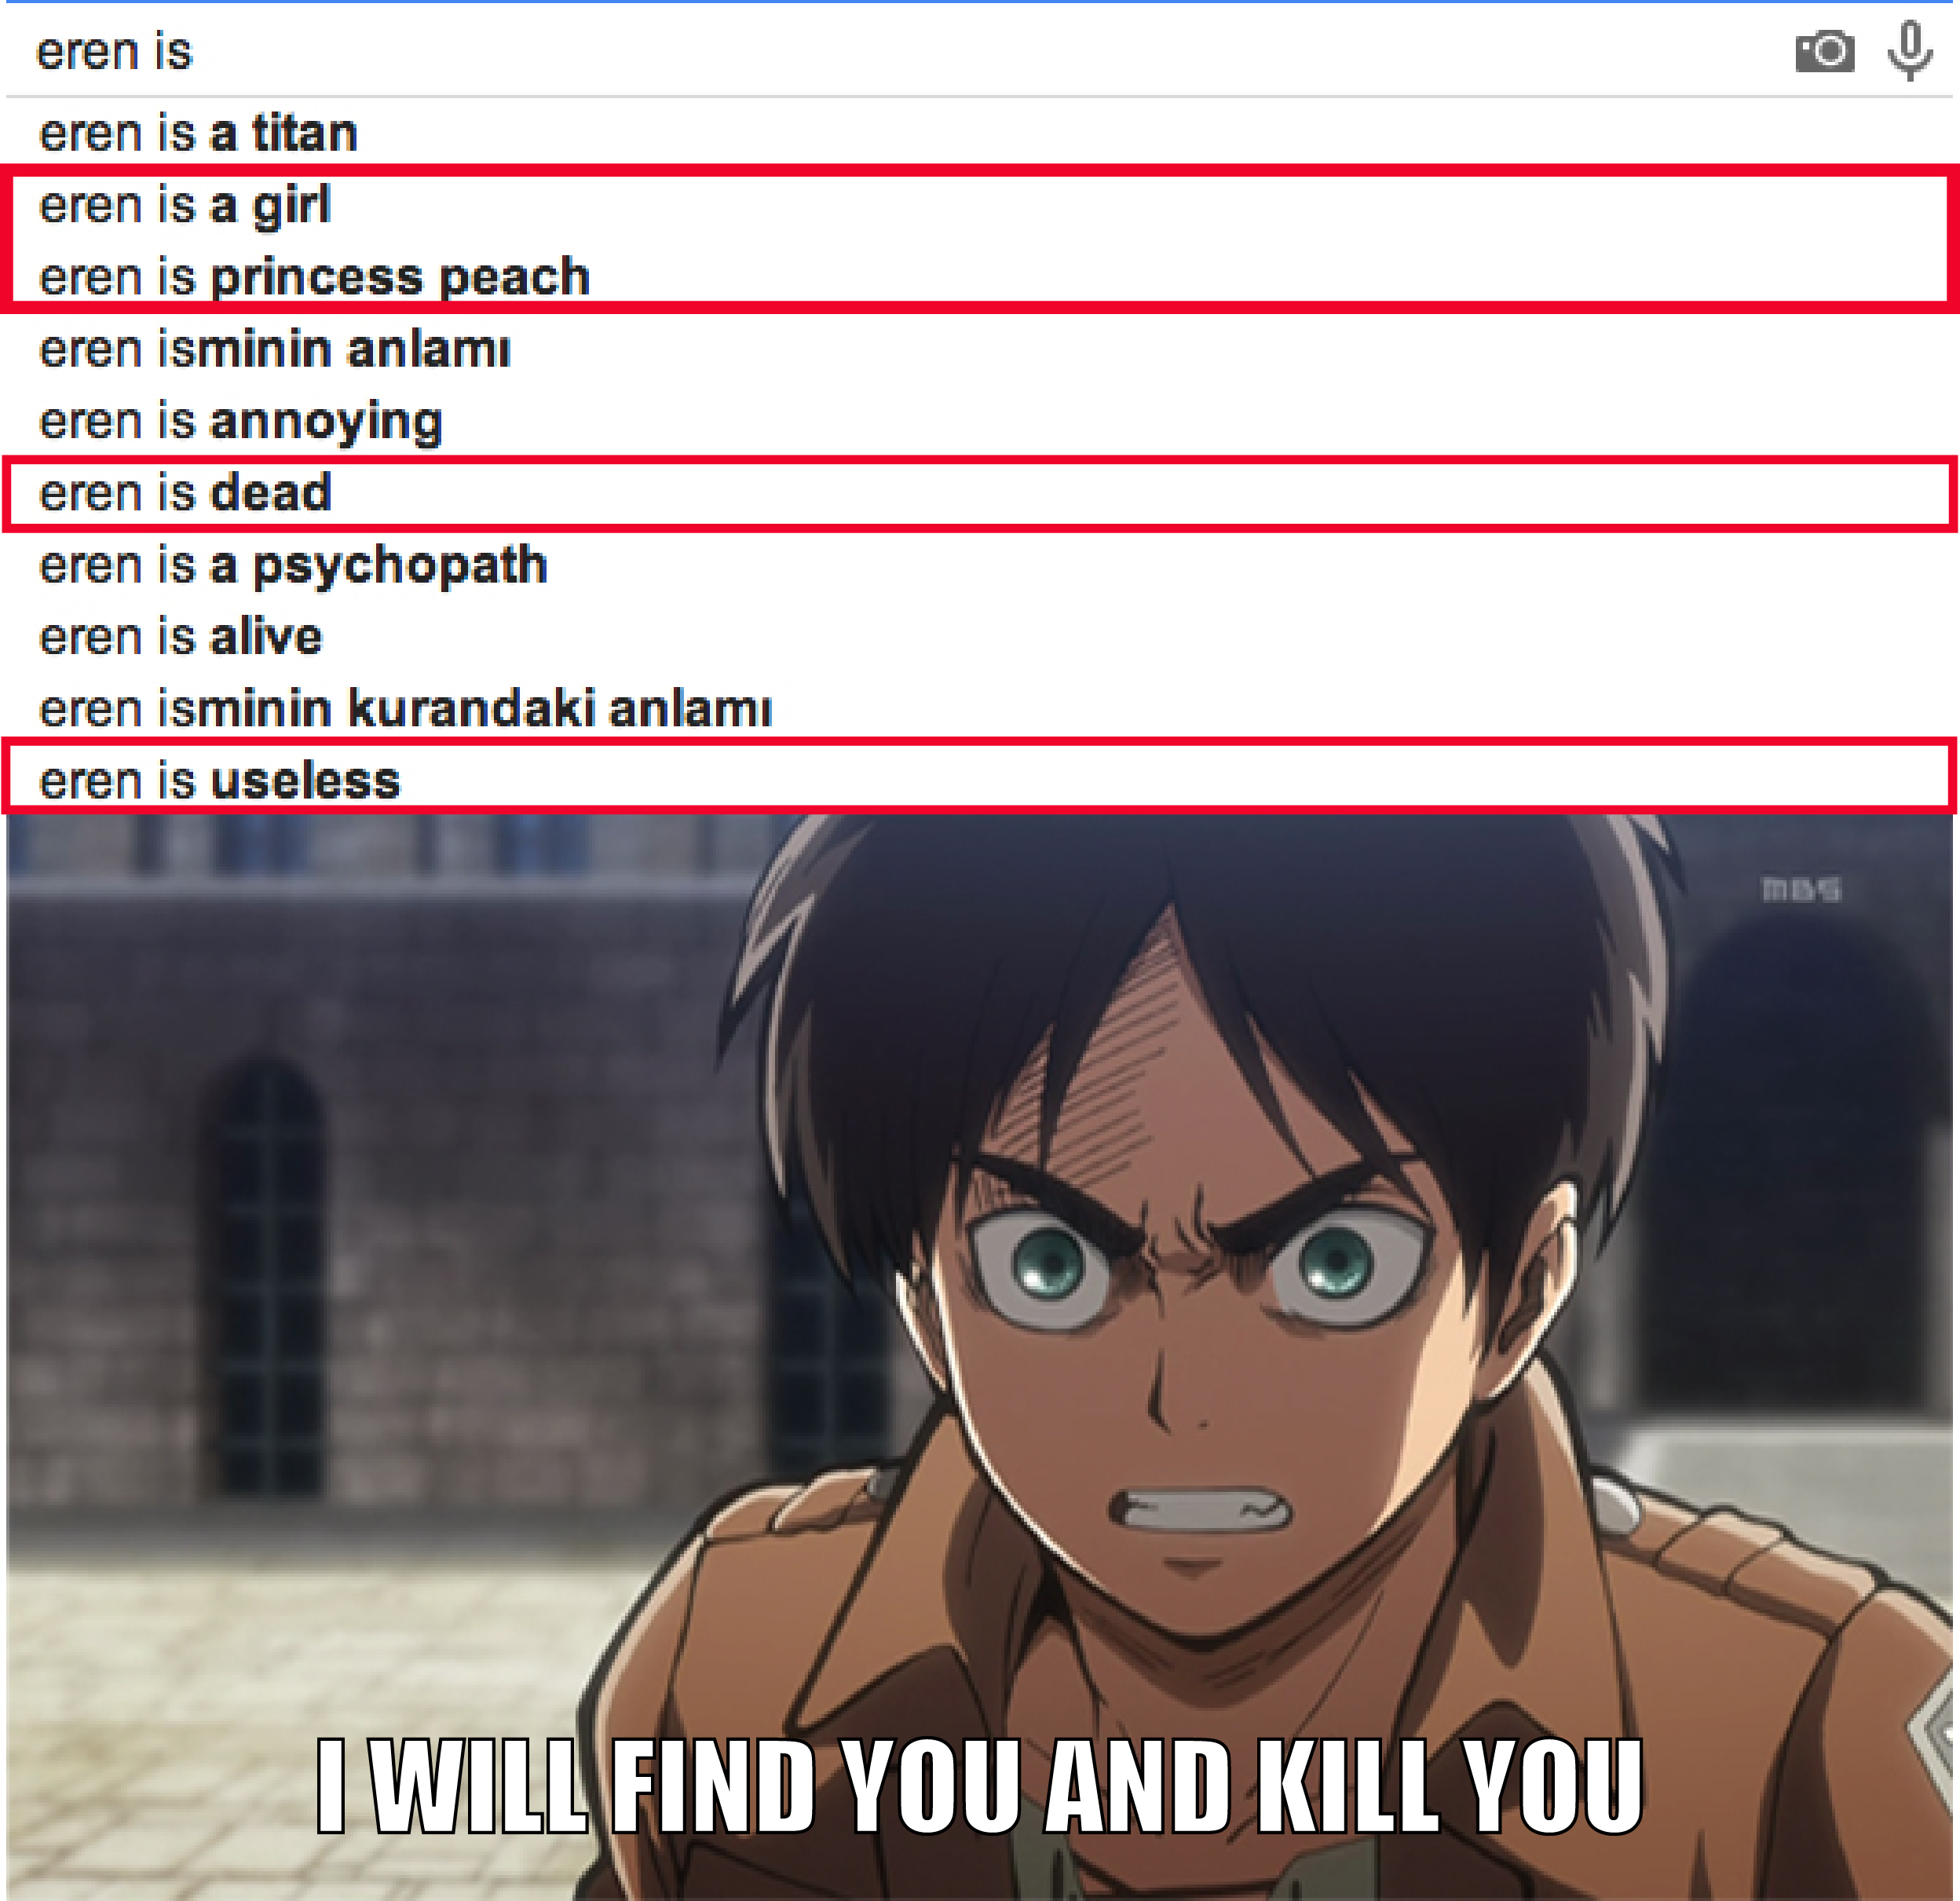 entertaining Attack on titan memes